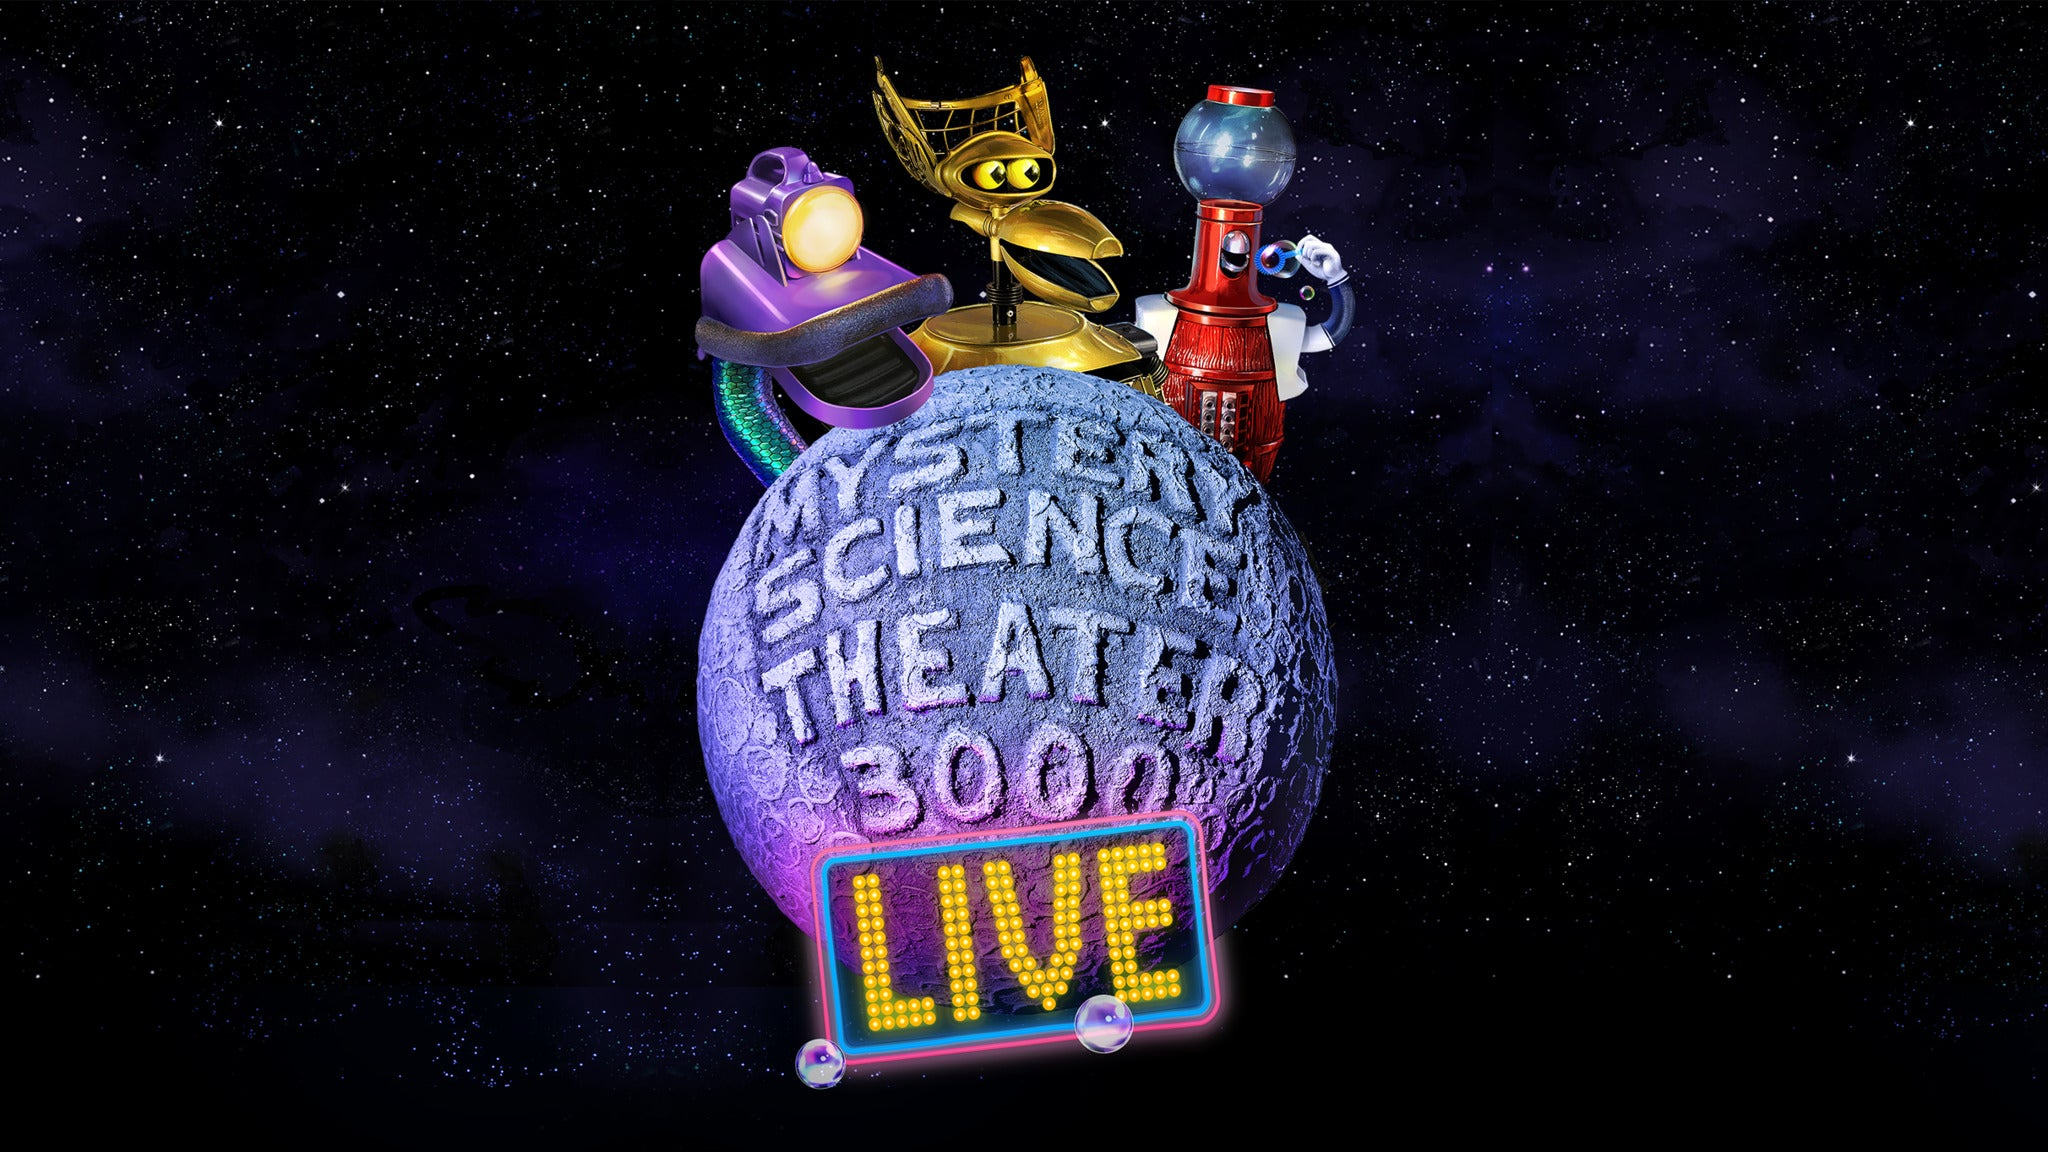 Mystery Science Theater 3000 LIVE: Time Bubble Tour presale password